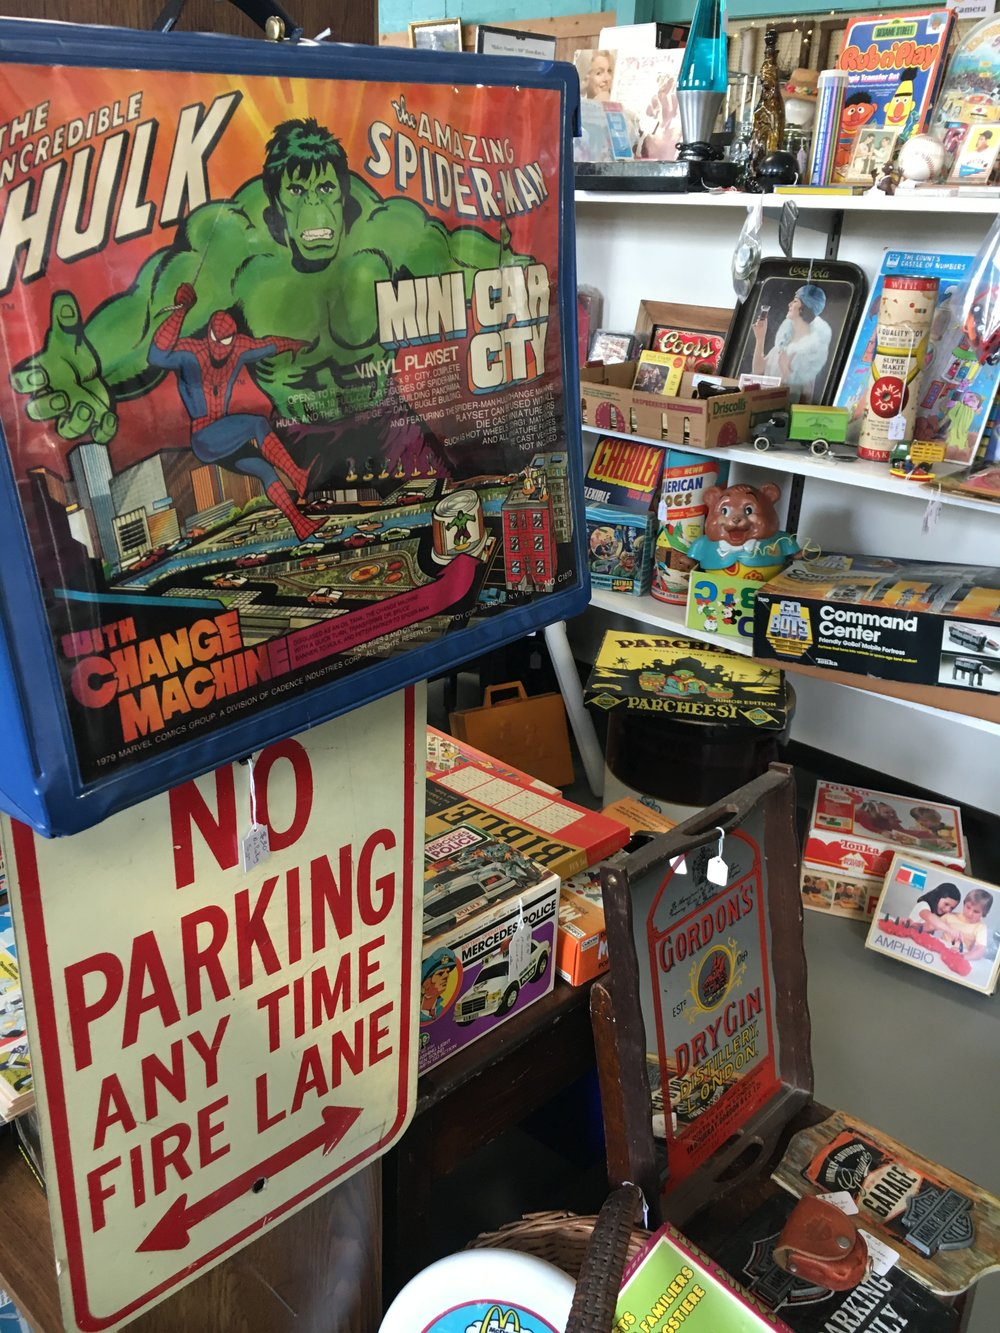 ANDtiques - A variety of antique finds, collectibles and vintage toys.